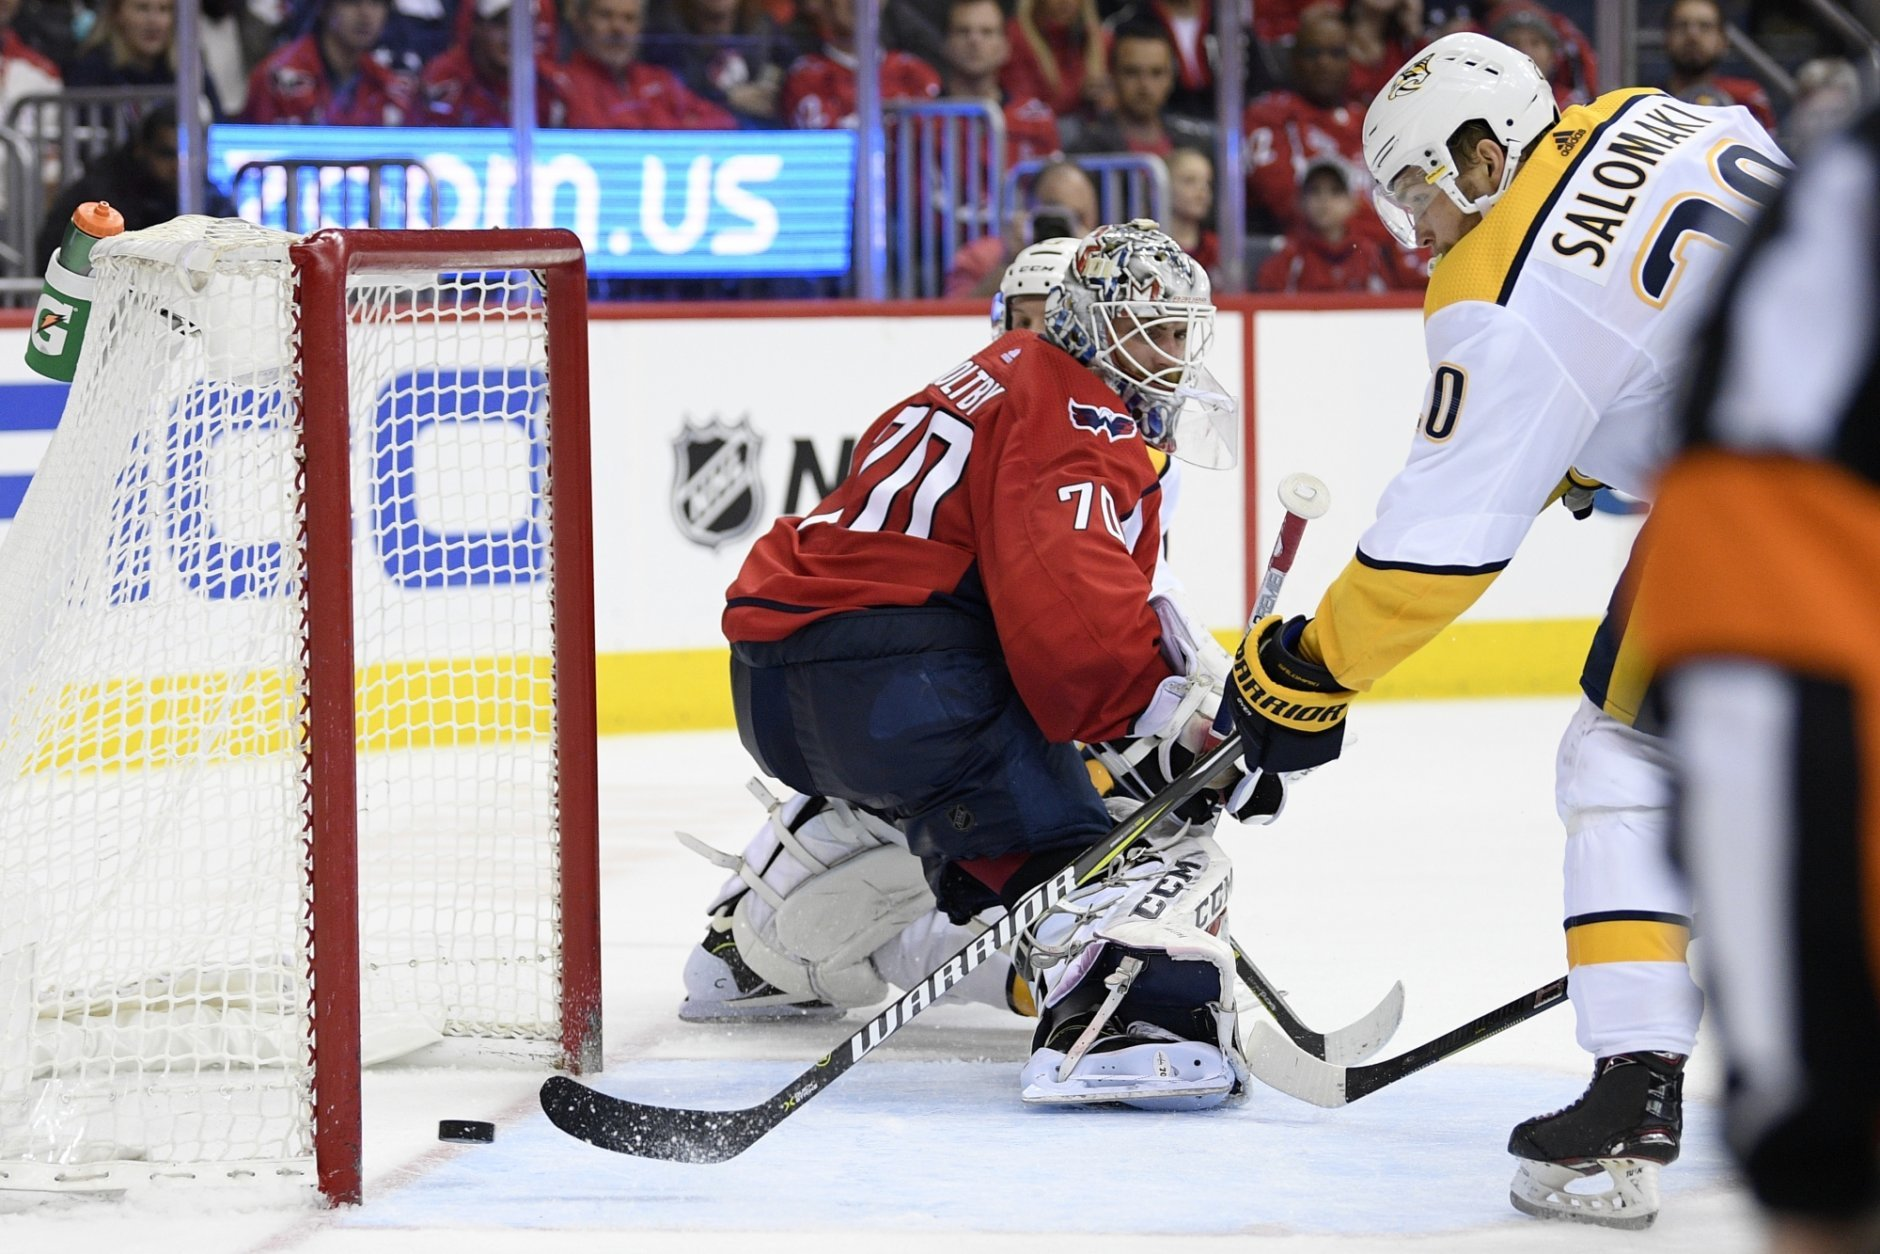 Nashville Predators right wing Miikka Salomaki (20), of Finland, scores a goal against Washington Capitals goaltender Braden Holtby (70) during the second period of an NHL hockey game, Monday, Dec. 31, 2018, in Washington. (AP Photo/Nick Wass)